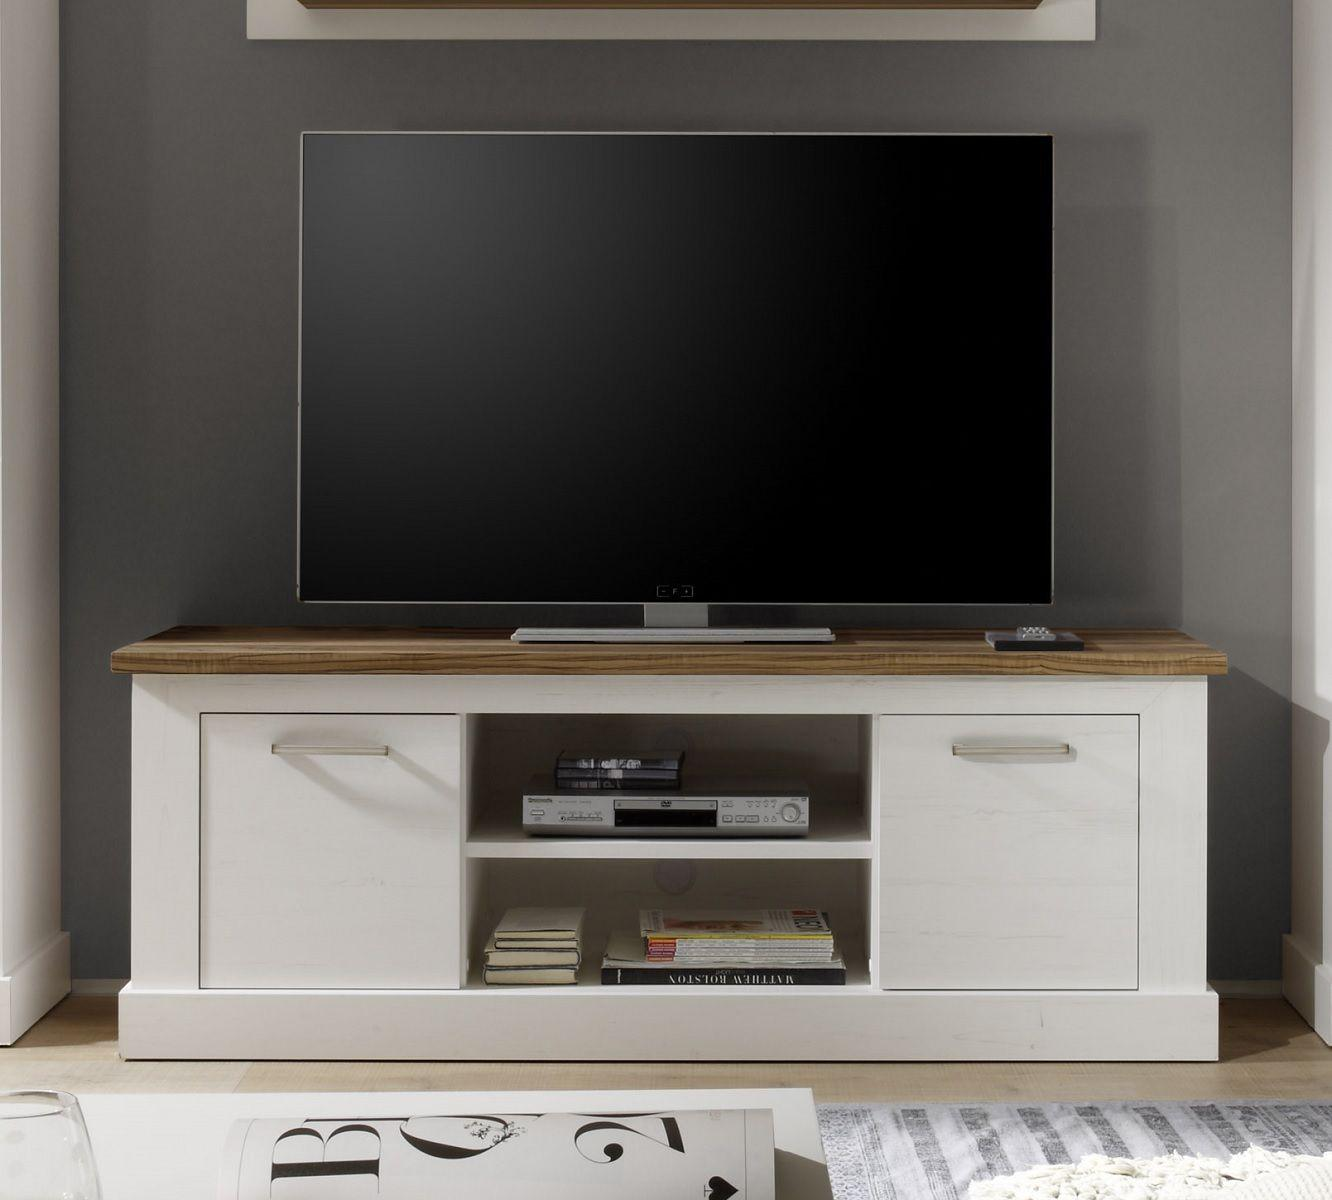 lowboard tv schrank naturell 160x60 cm im pinie weiss nussbaum sattin kaufen bei sylwia. Black Bedroom Furniture Sets. Home Design Ideas